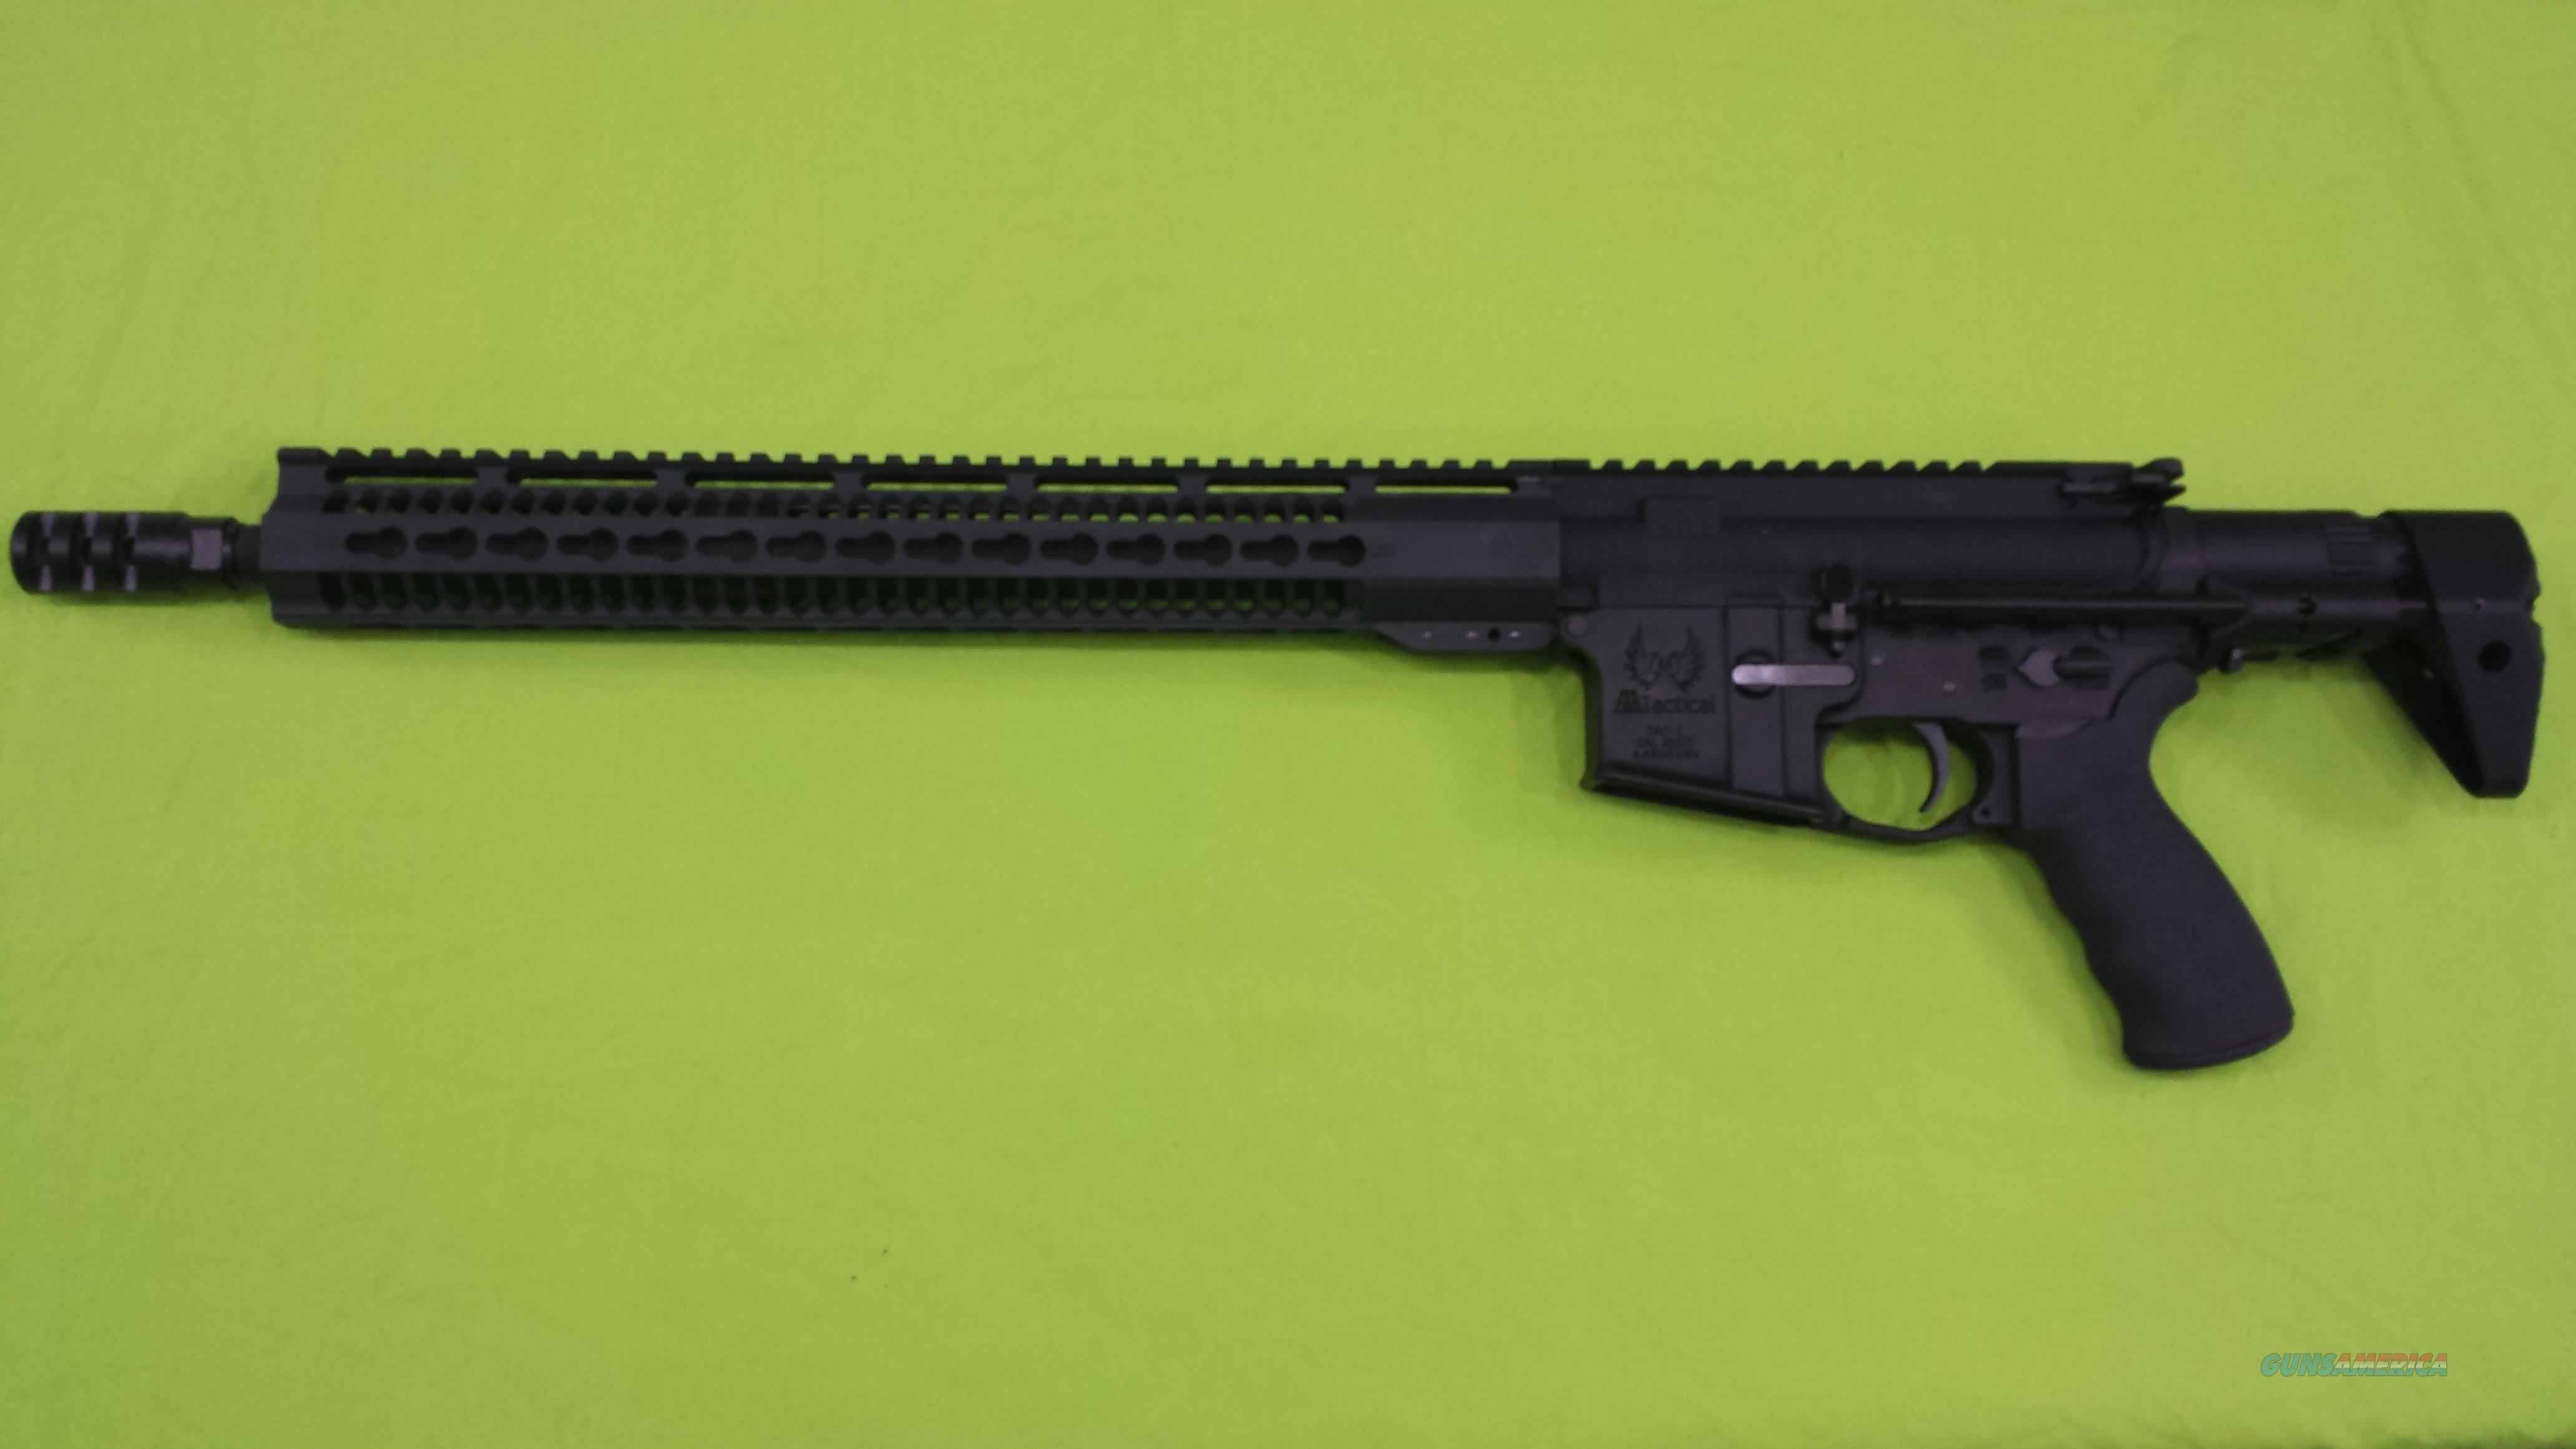 AA TACTICAL TAC-L 5.56 TROY PDW STOCK BLACK AR15   Guns > Rifles > AR-15 Rifles - Small Manufacturers > Complete Rifle